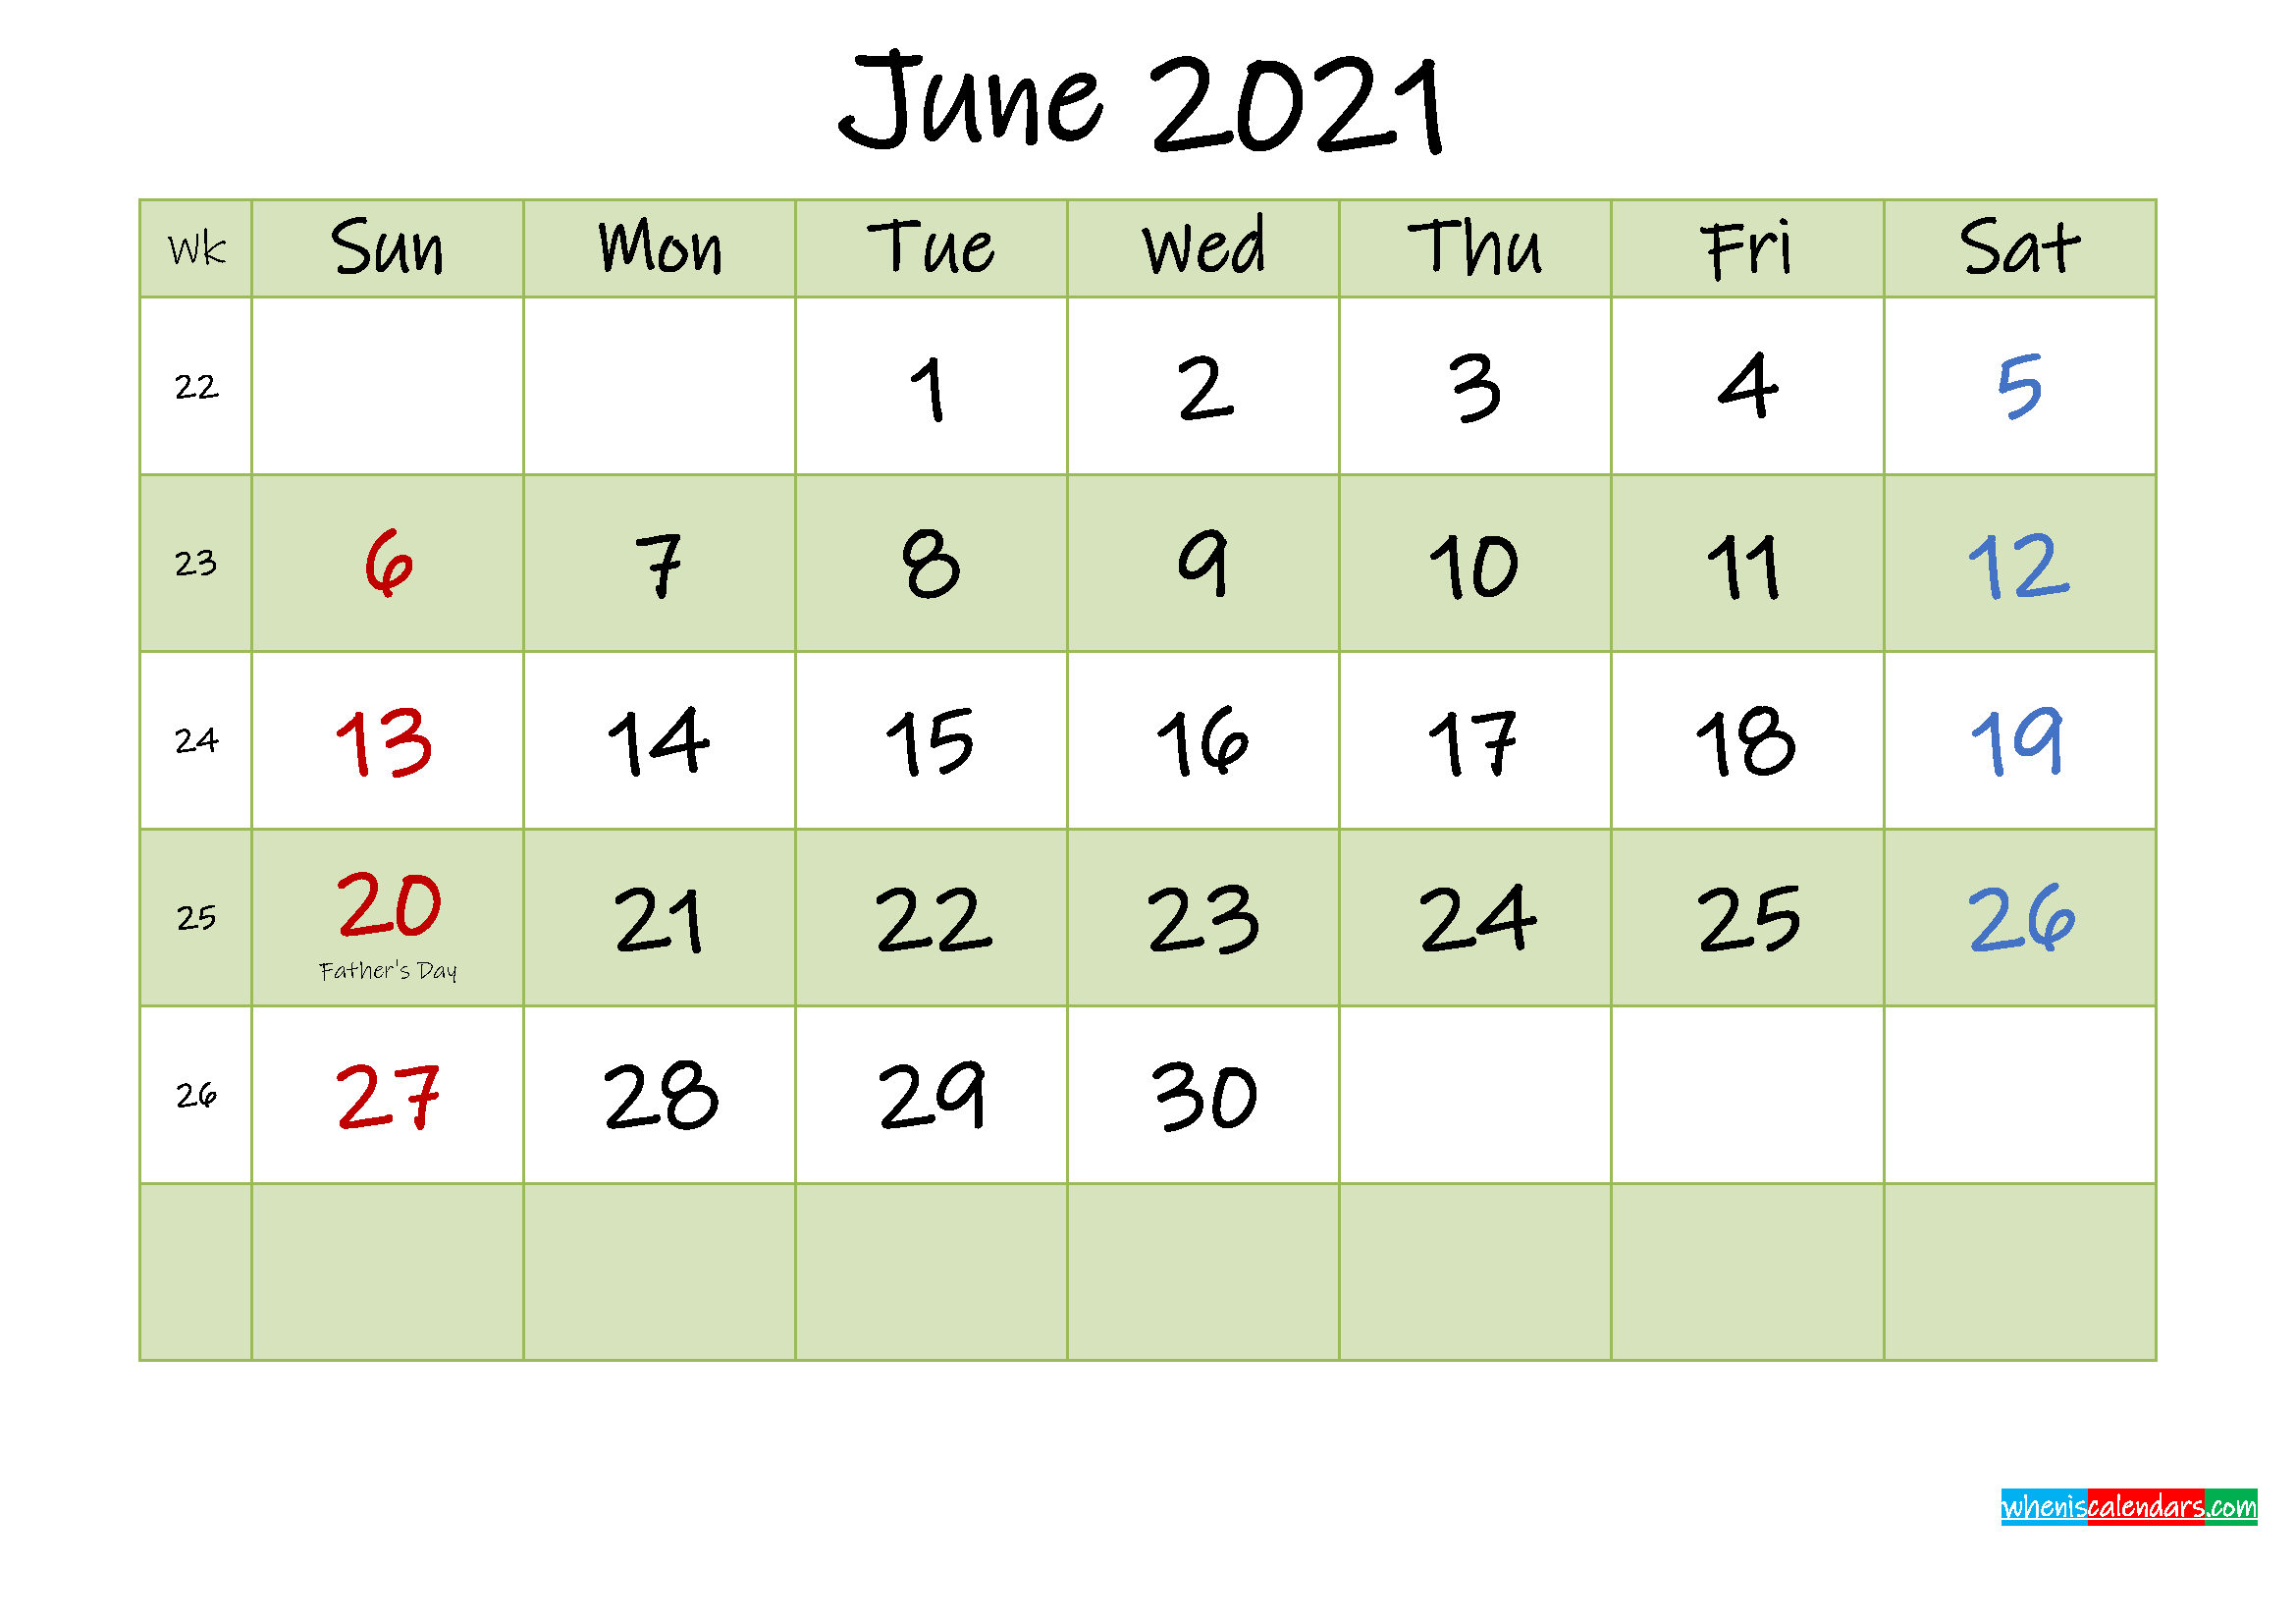 June 2021 Calendar with Holidays Printable